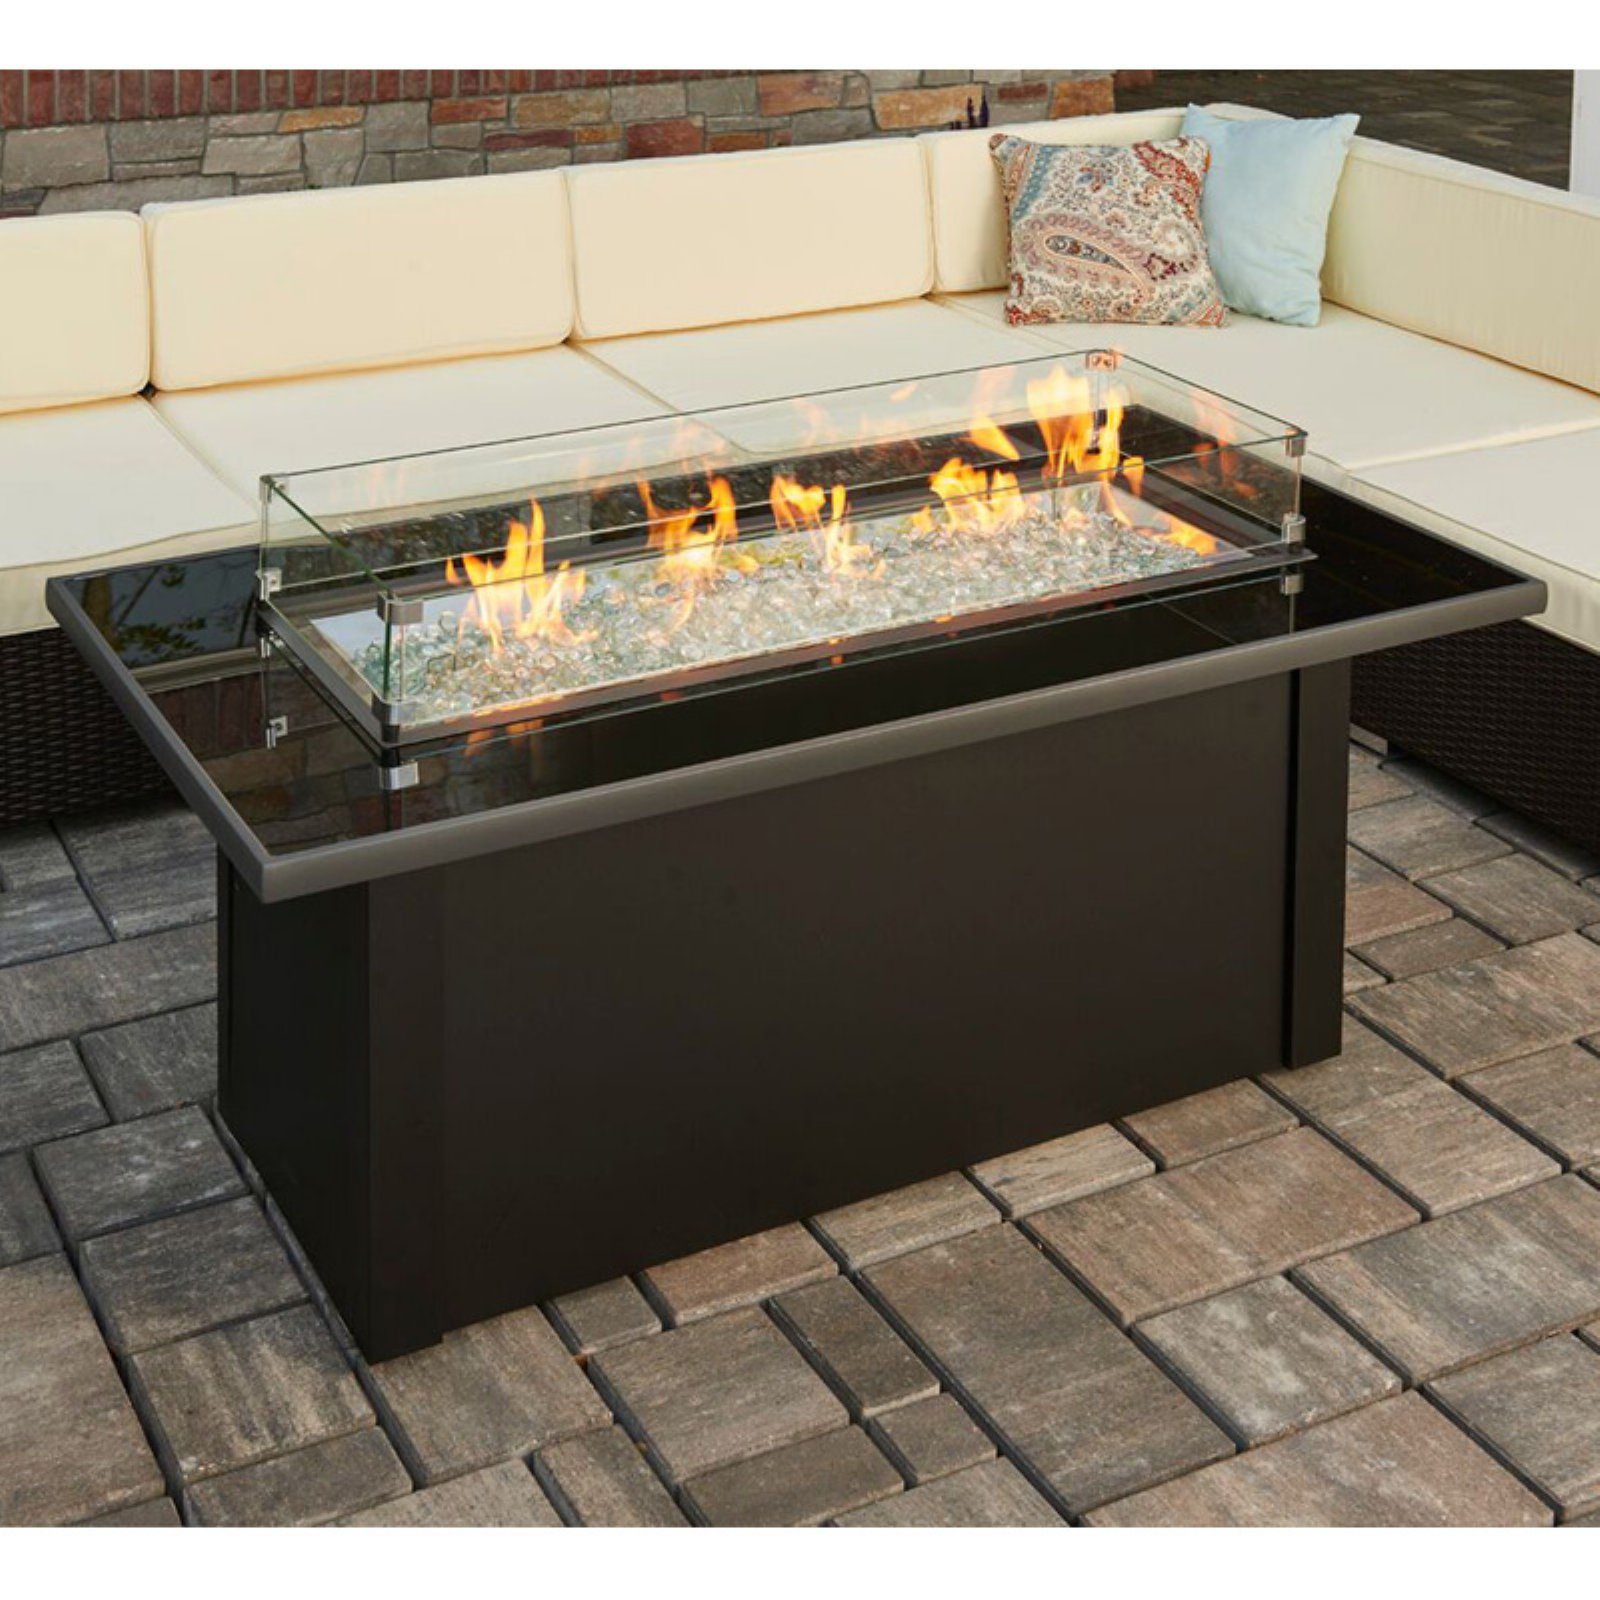 Fireplace Accessories Walmart New Outdoor Greatroom Monte Carlo 59 3 In Fire Table with Free Cover